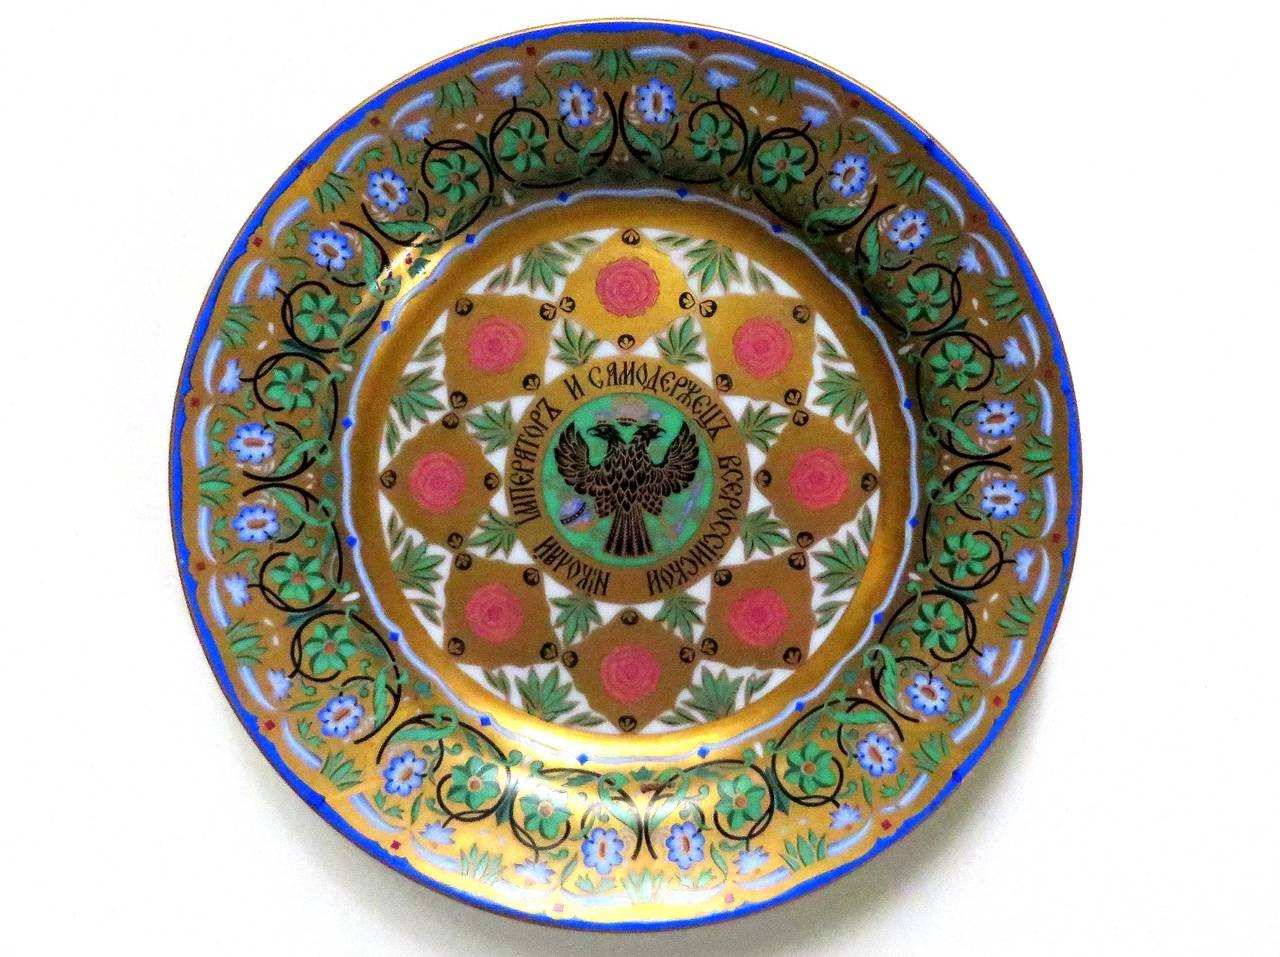 Two Imperial Russian luncheon plates centered by the Imperial double headed Eagle encircled by the Russian  sc 1 st  1stDibs & Two Russian Imperial Kremlin Style Luncheon Porcelain Plates For ...